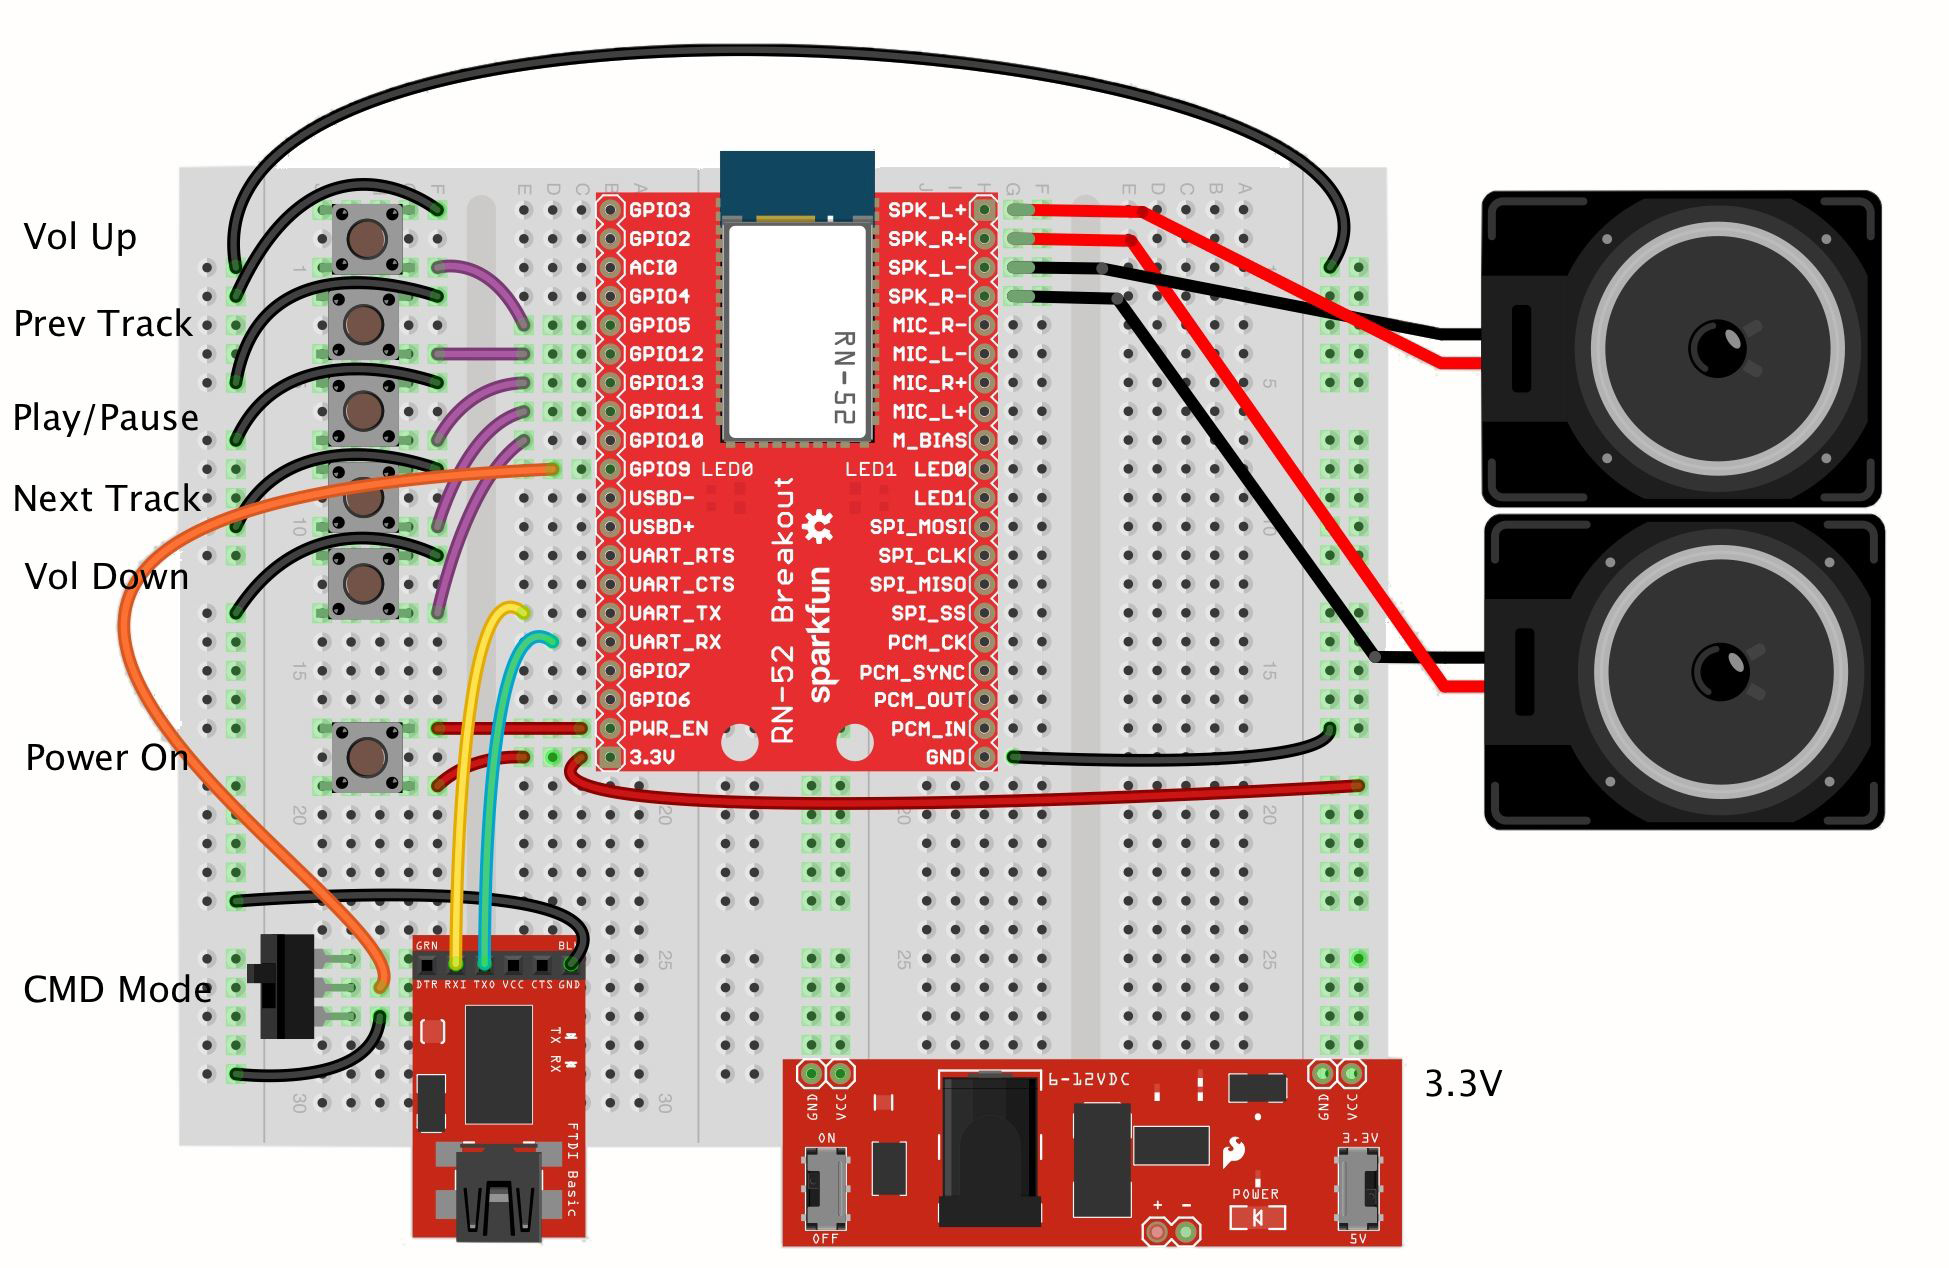 Rn 52 Bluetooth Hookup Guide Automatic Play On Power Up Circuit Diagram For Ipod 3 And 4 Audio